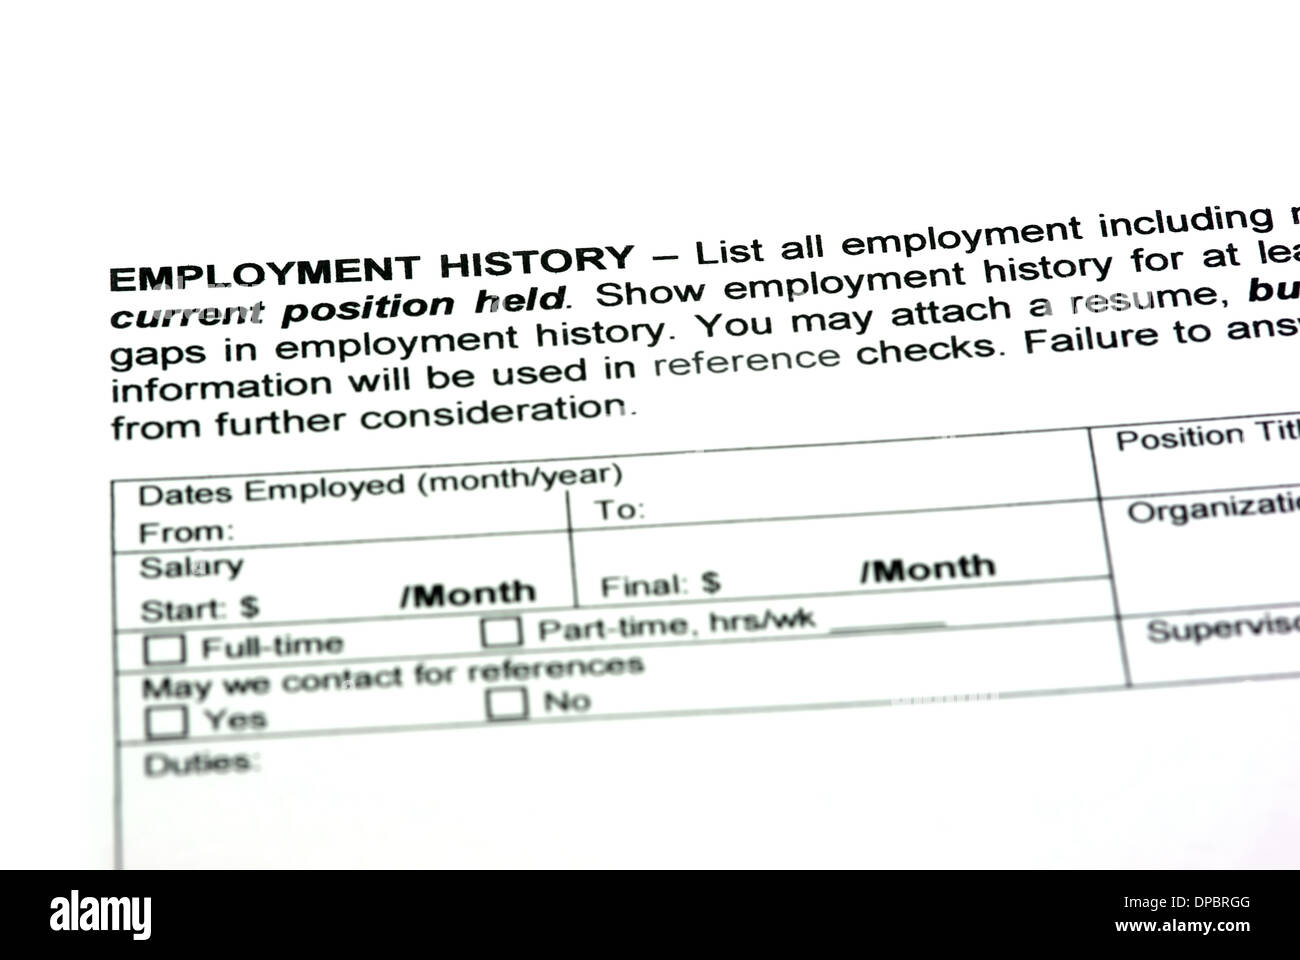 employment history stock photos employment history stock images